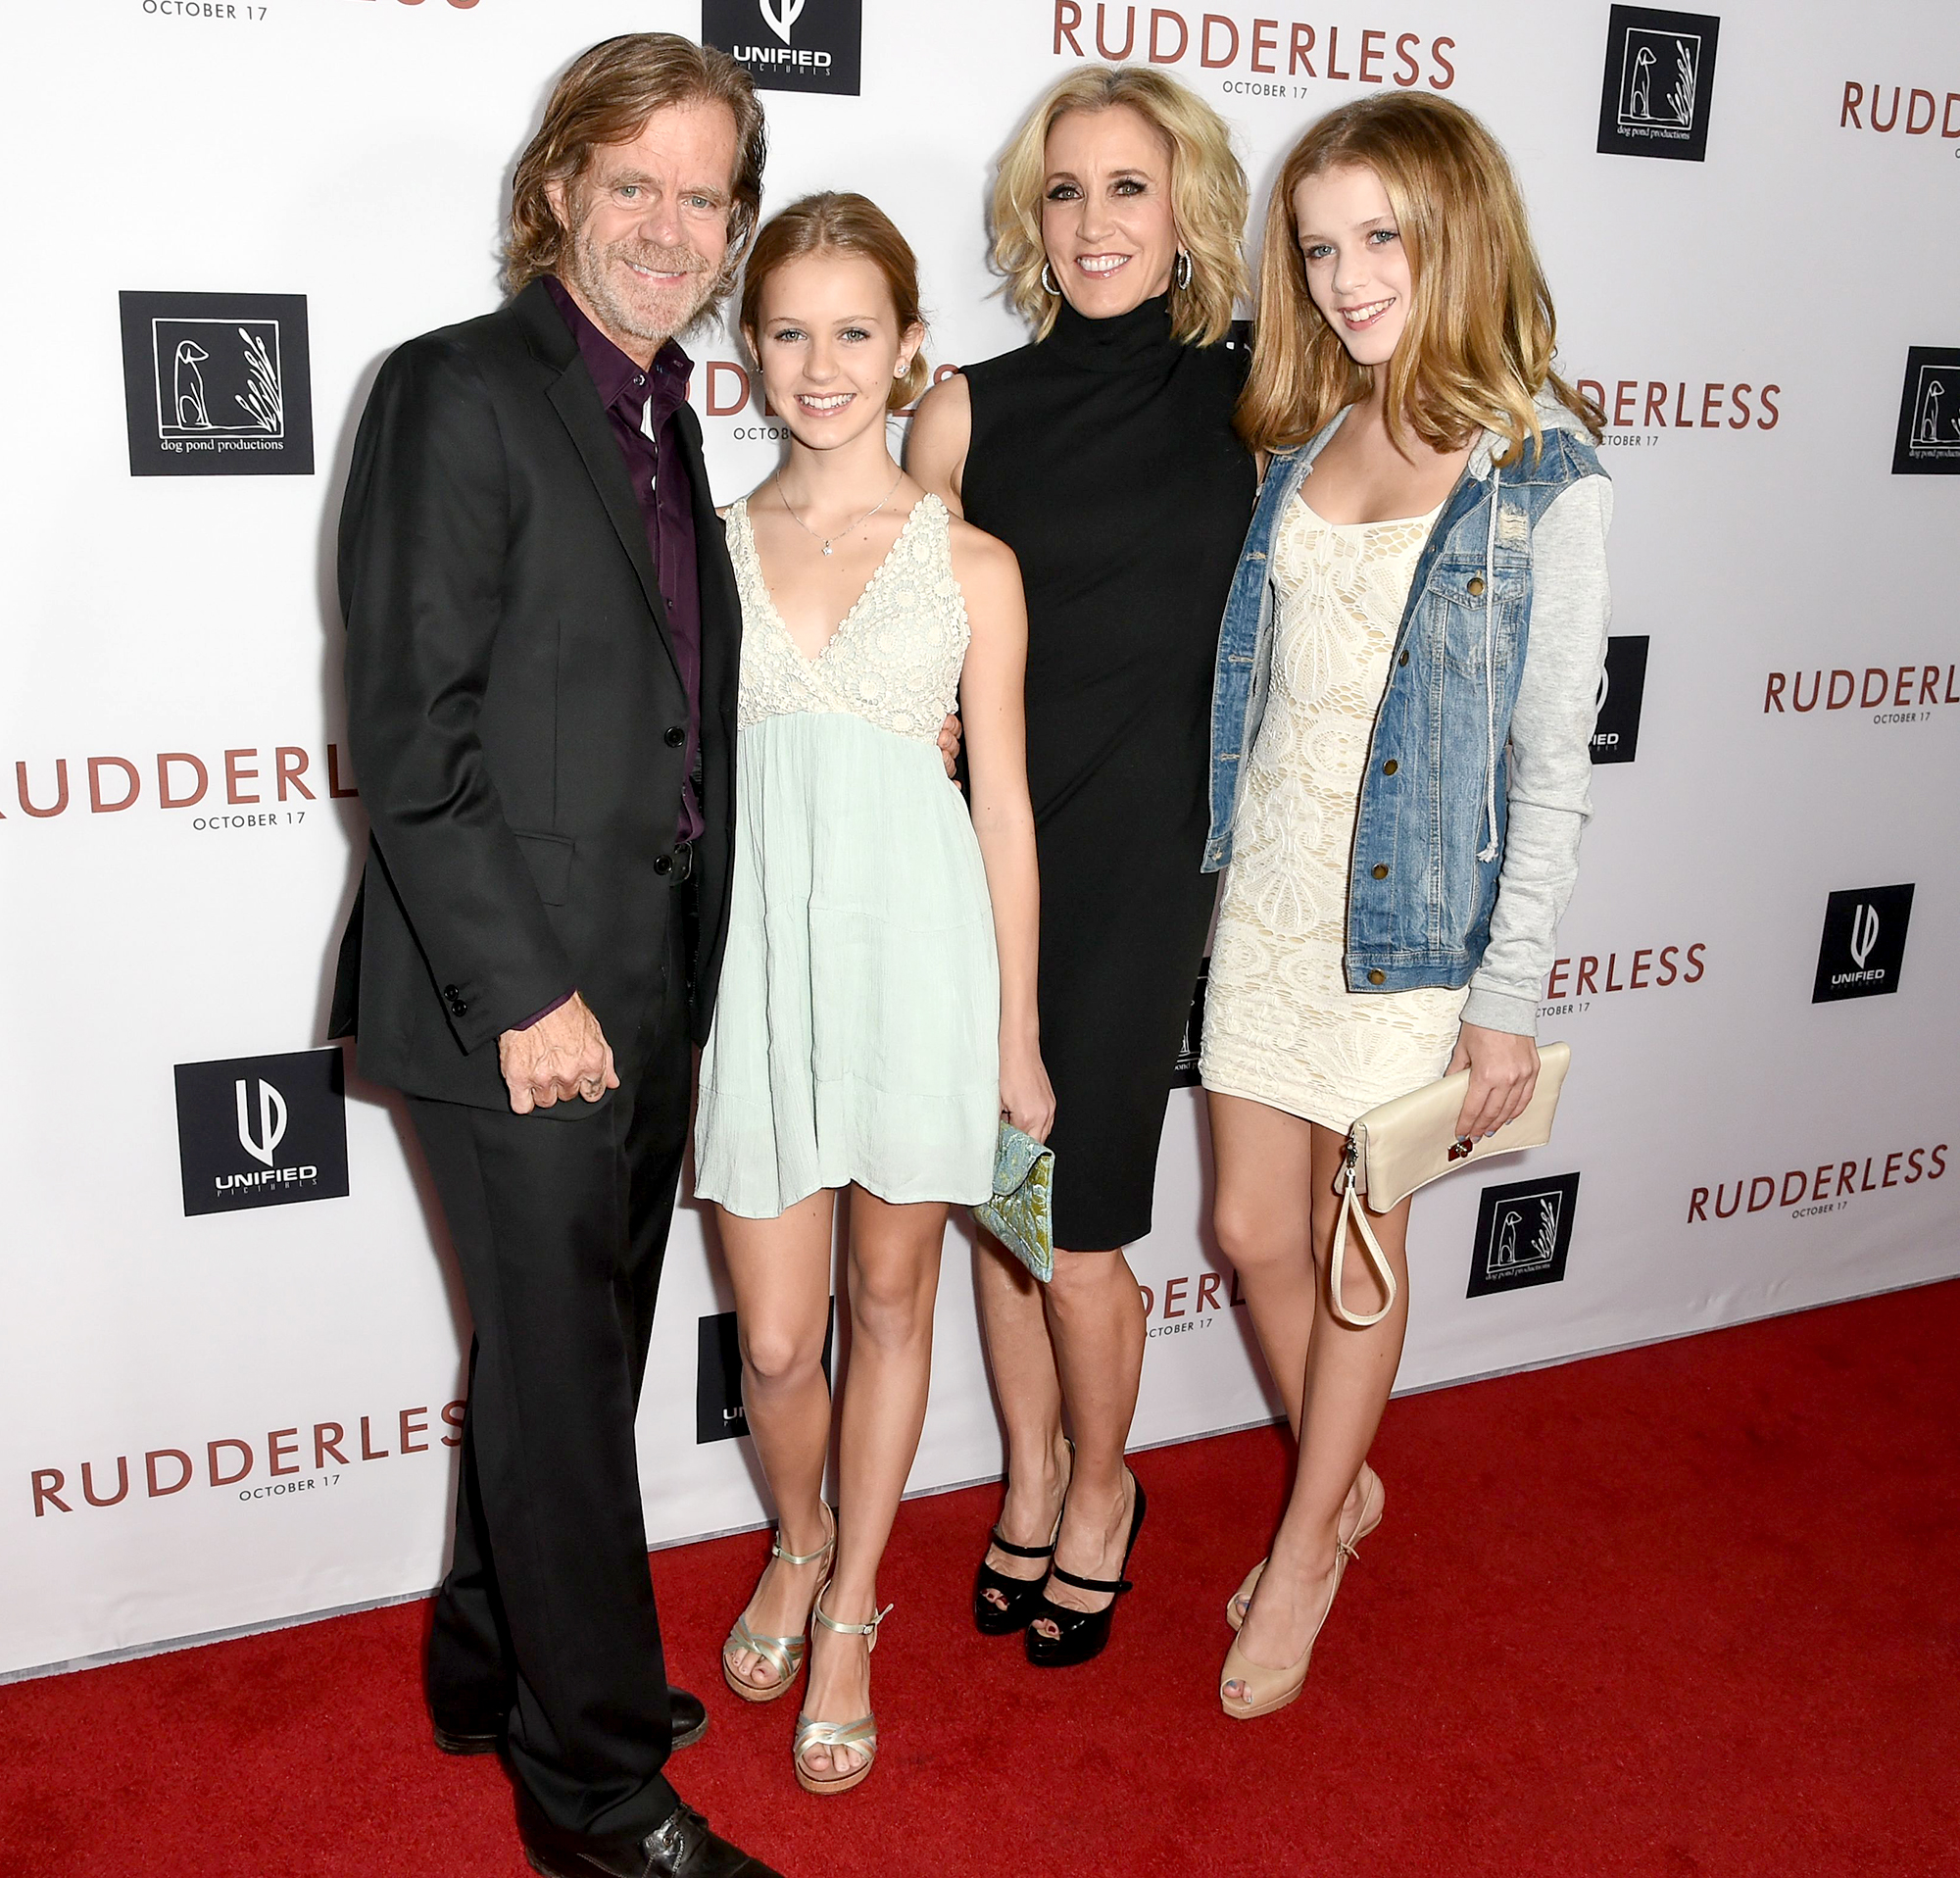 William-H.-Macy-and-Felicity-Huffman-with-daughters-Sophia-Grace-and-Georgia-Grace-Macy